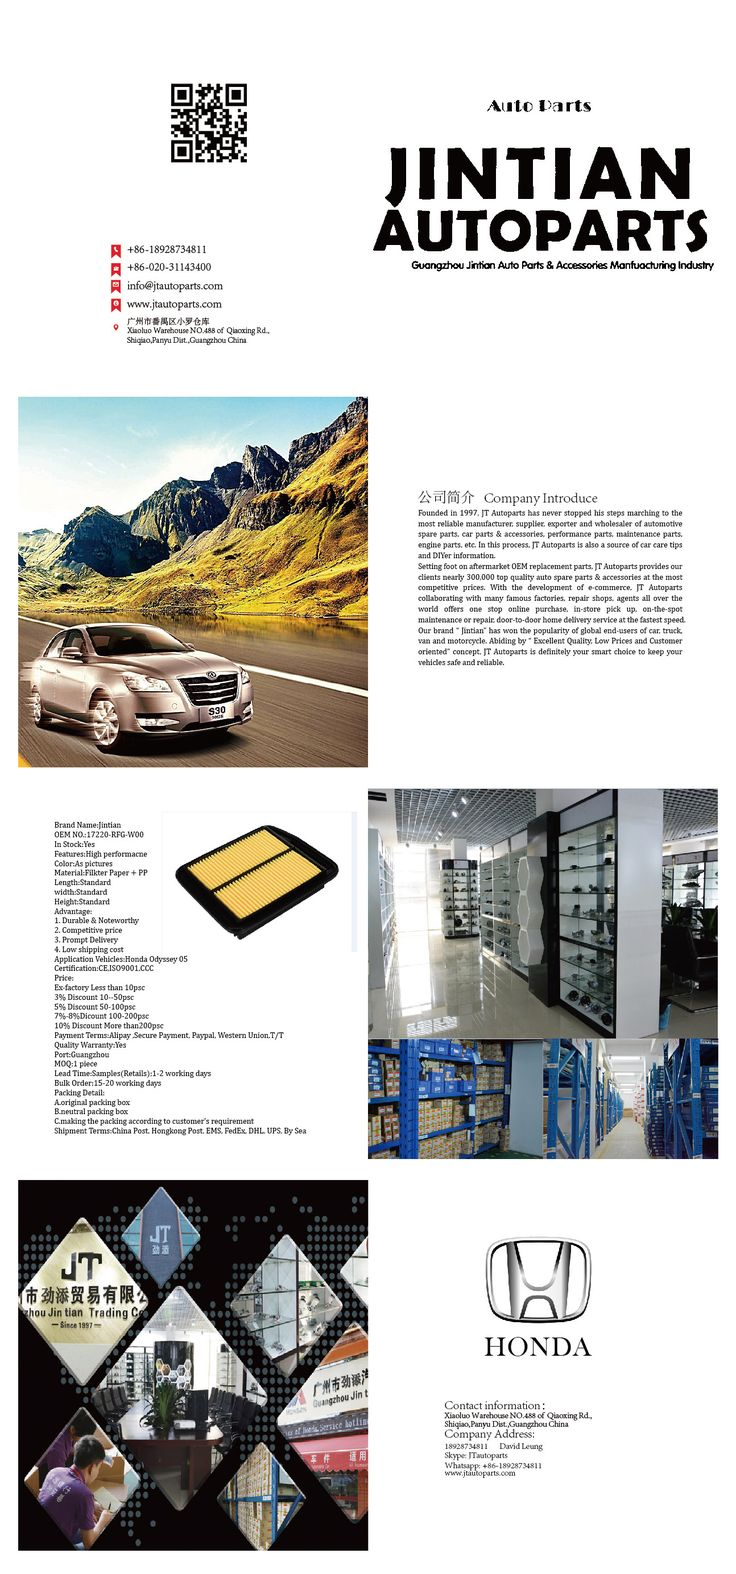 Http www jtautoparts com special offers c html hi friends thrilling news you can save 50 for your needed honda parts such as service parts oil filter